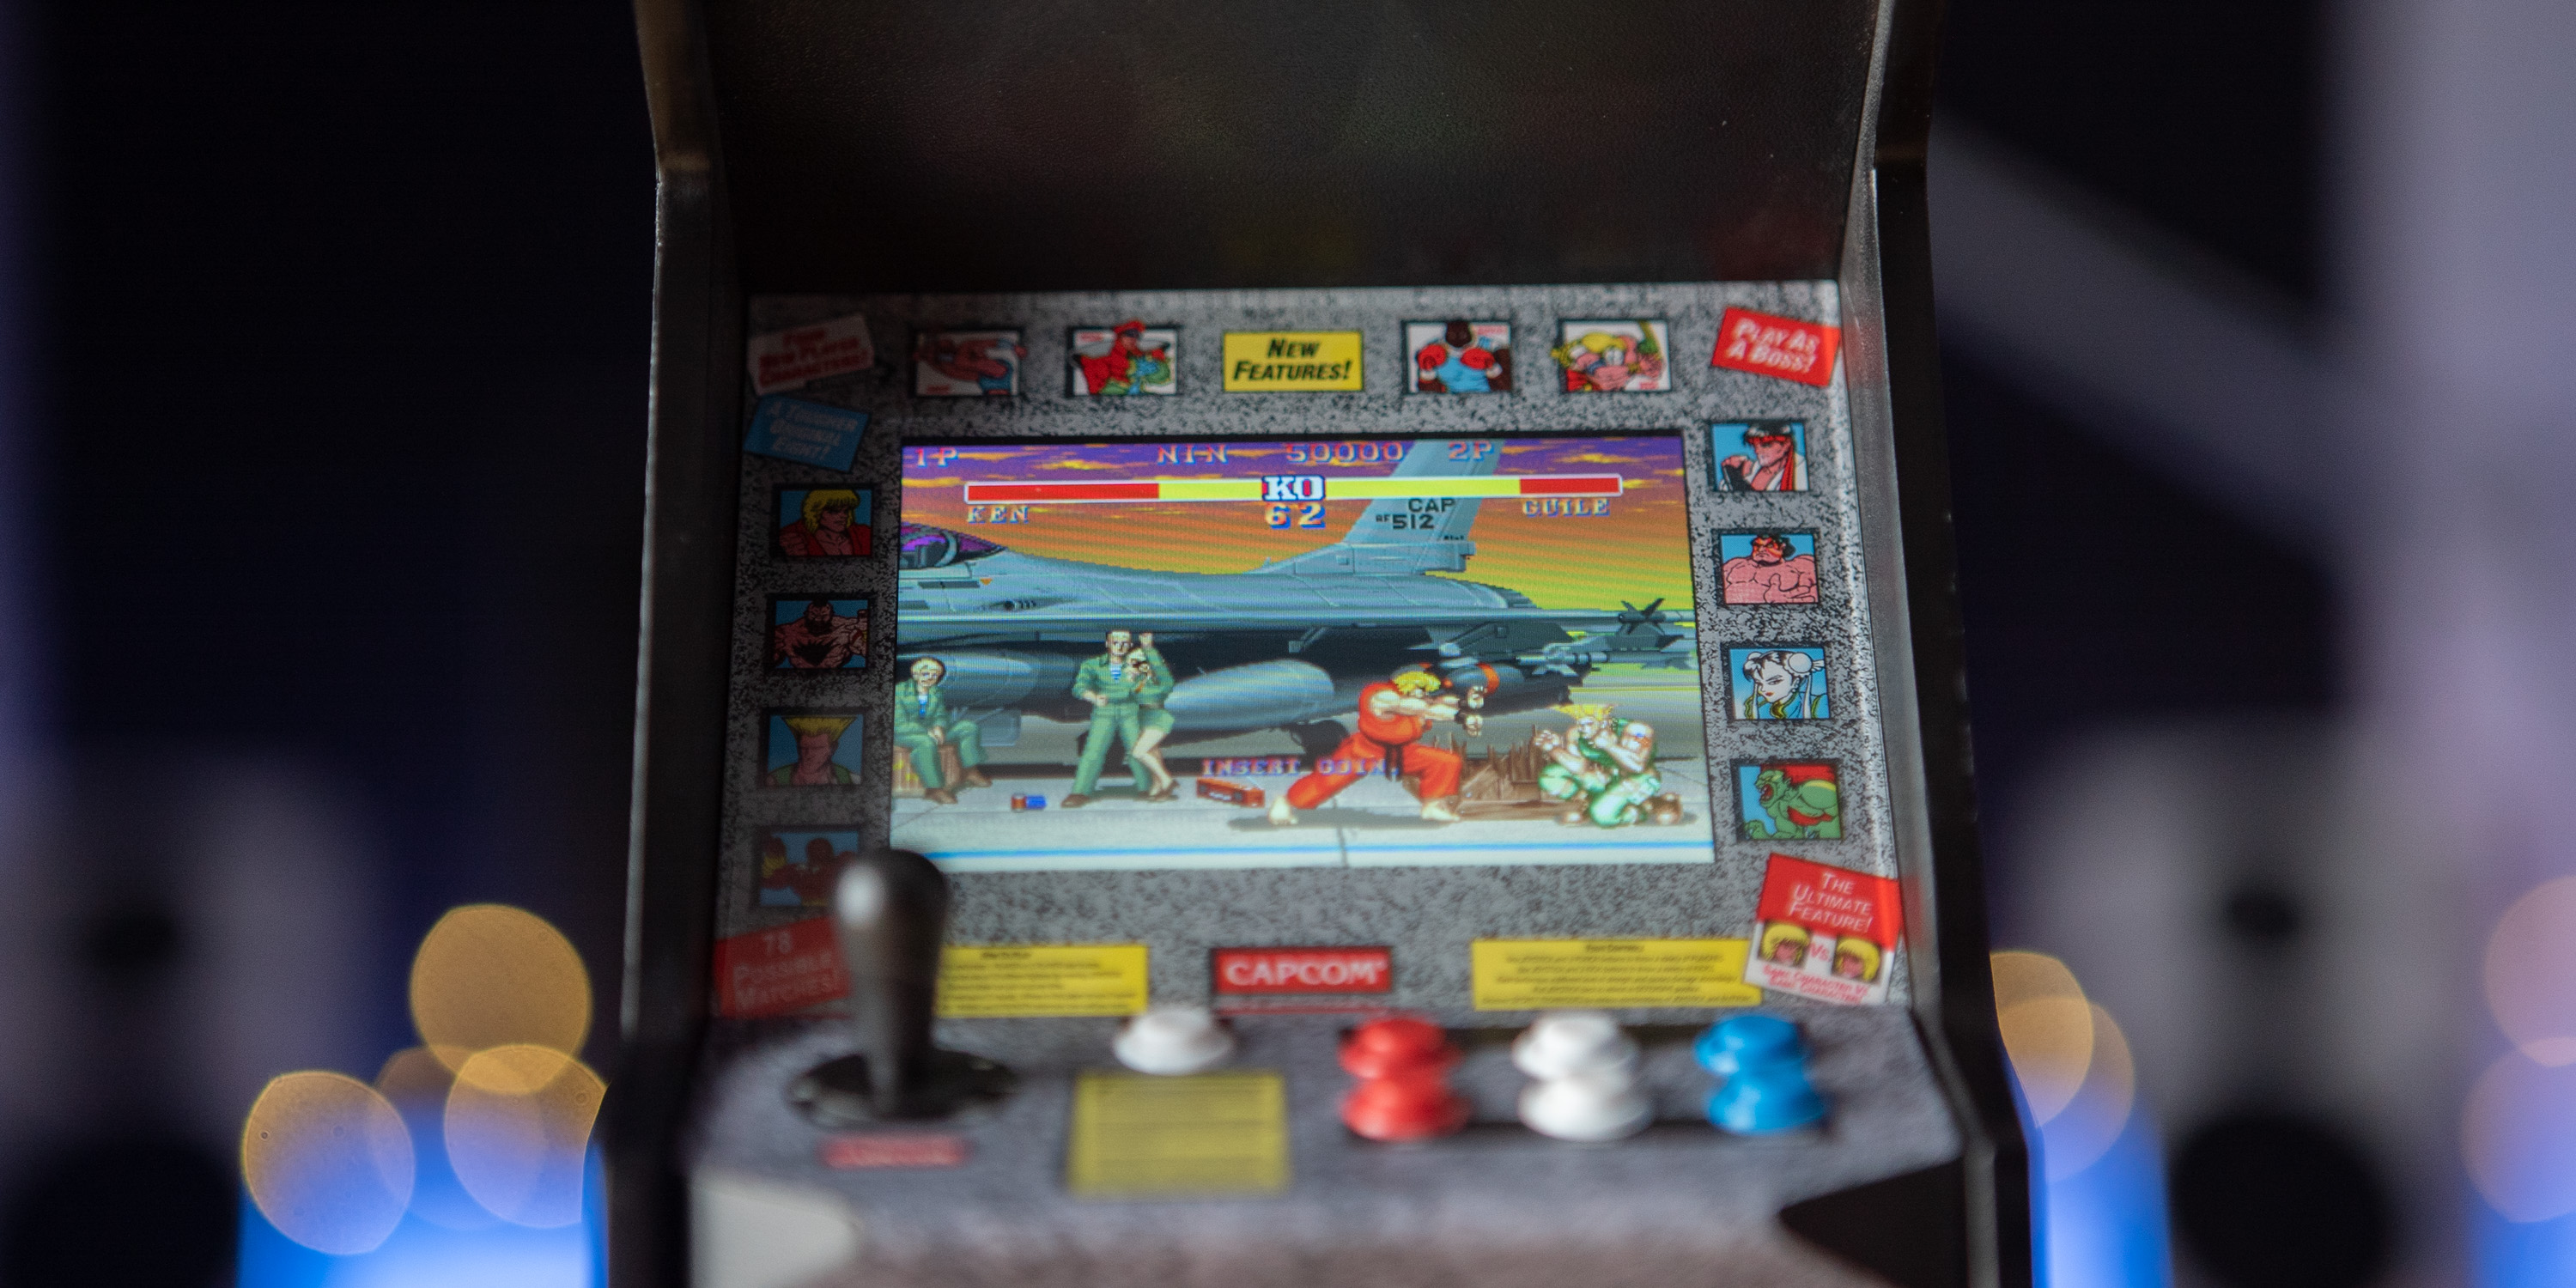 Street Fighter Ii Replicade Review An Incredibly Detailed Mini Arcade